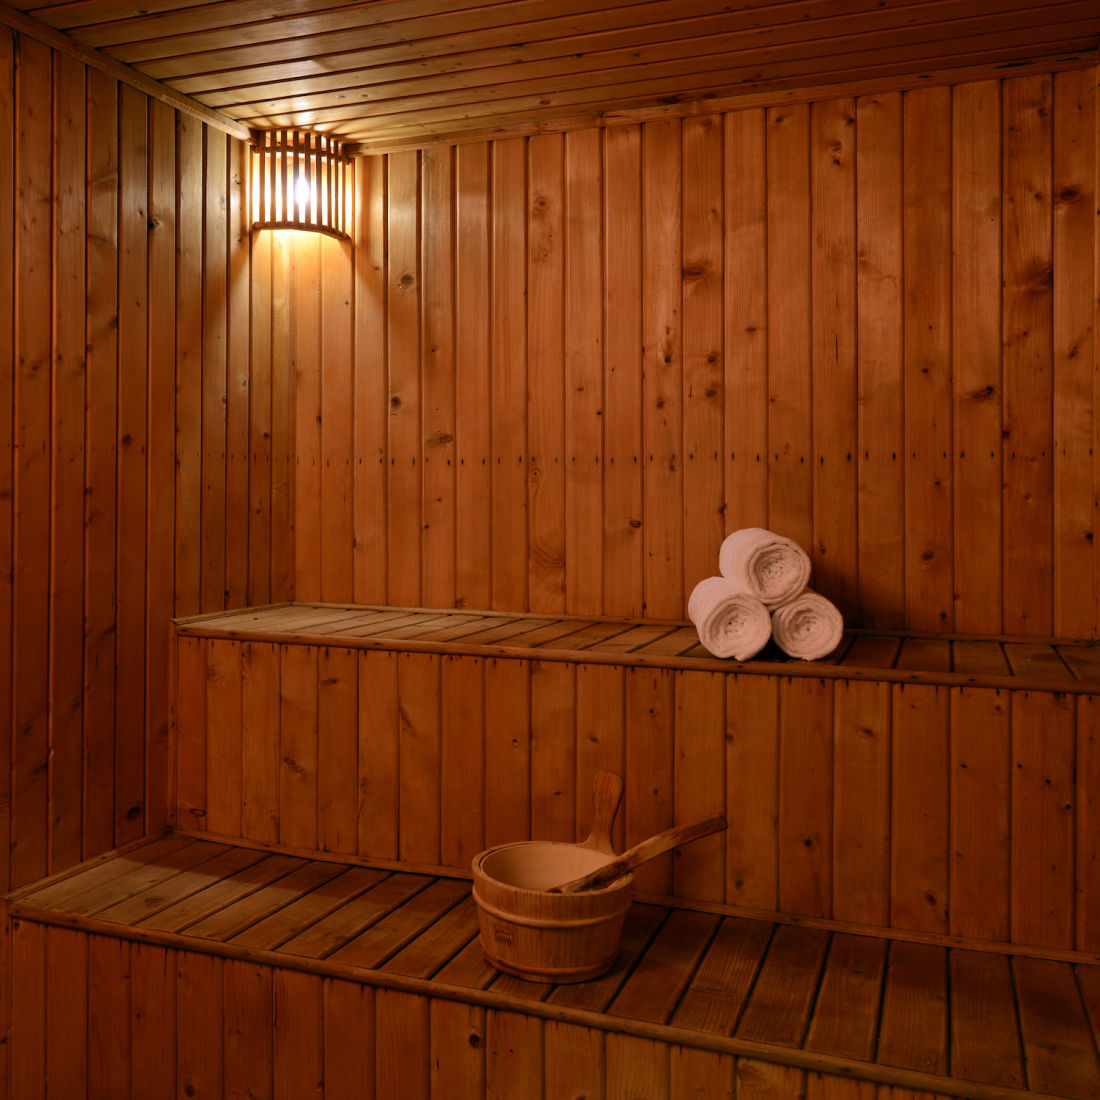 Sauna Facility at our resort in Mathura - Shri Radha Brij Vasundhara Resort Spa